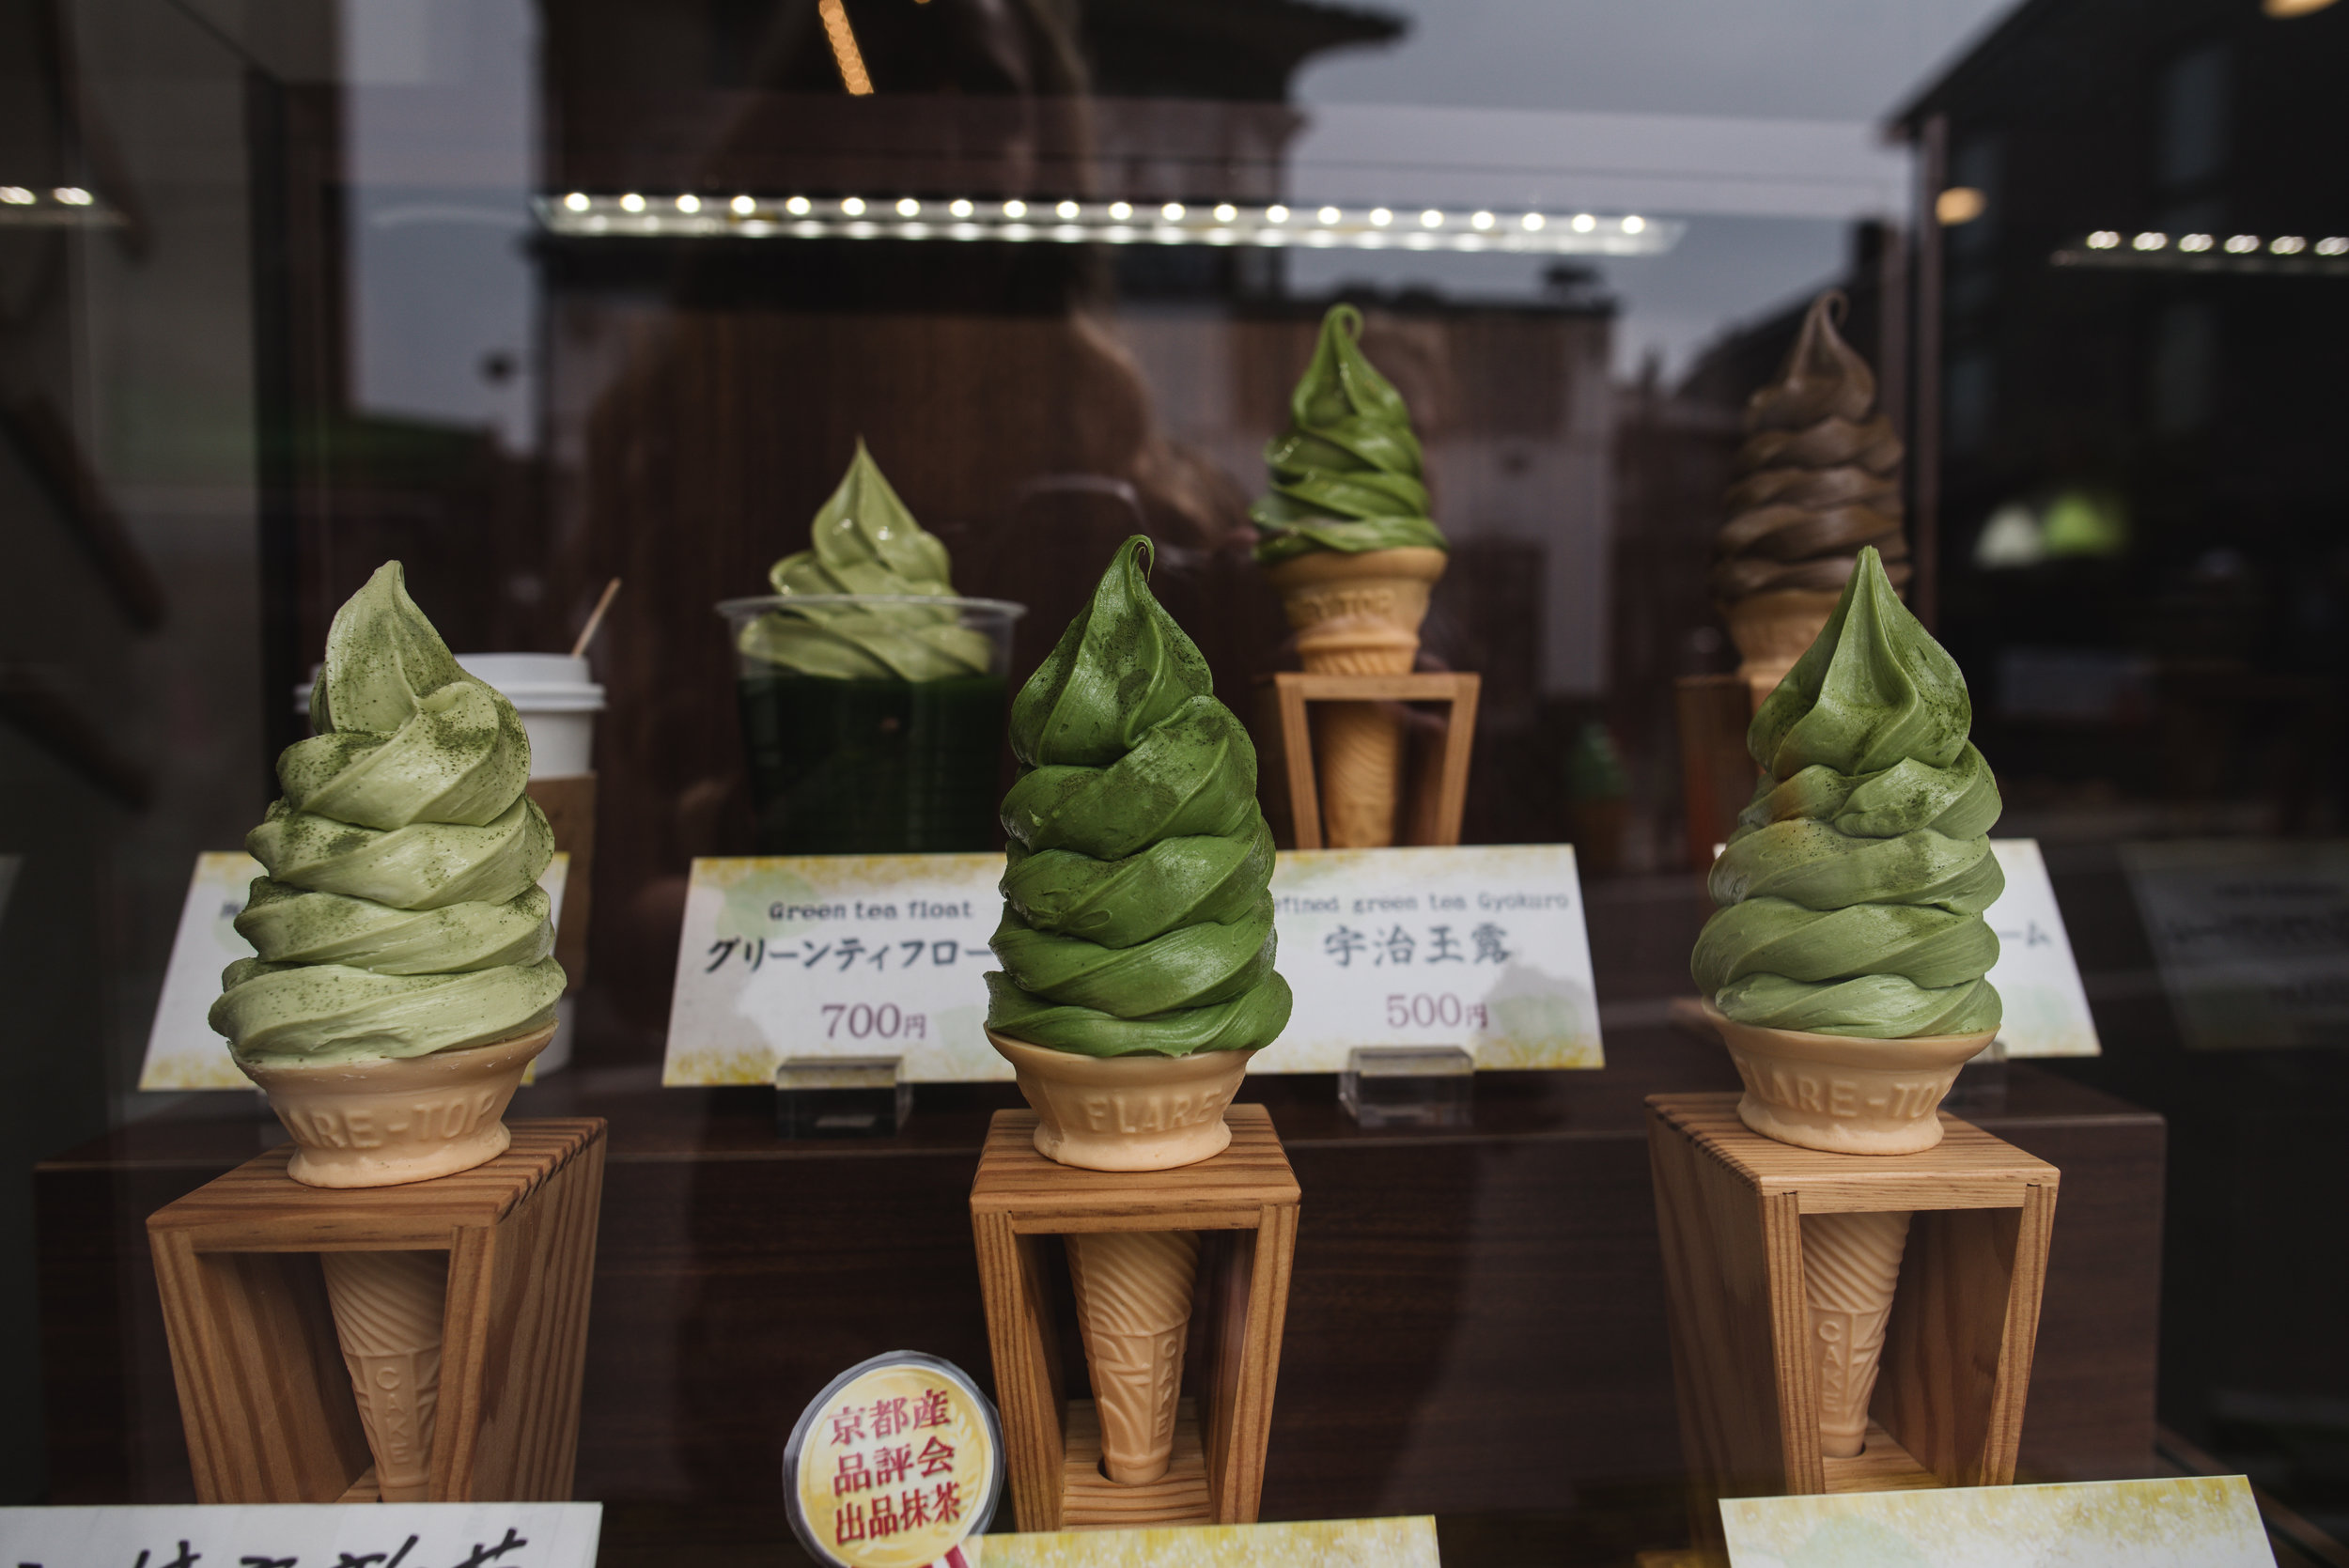 Matcha ice cream in a shop window. Matcha is a popular green tea flavor that can be found in the form of cake, cookies, and pretty much any other food you can fathom.